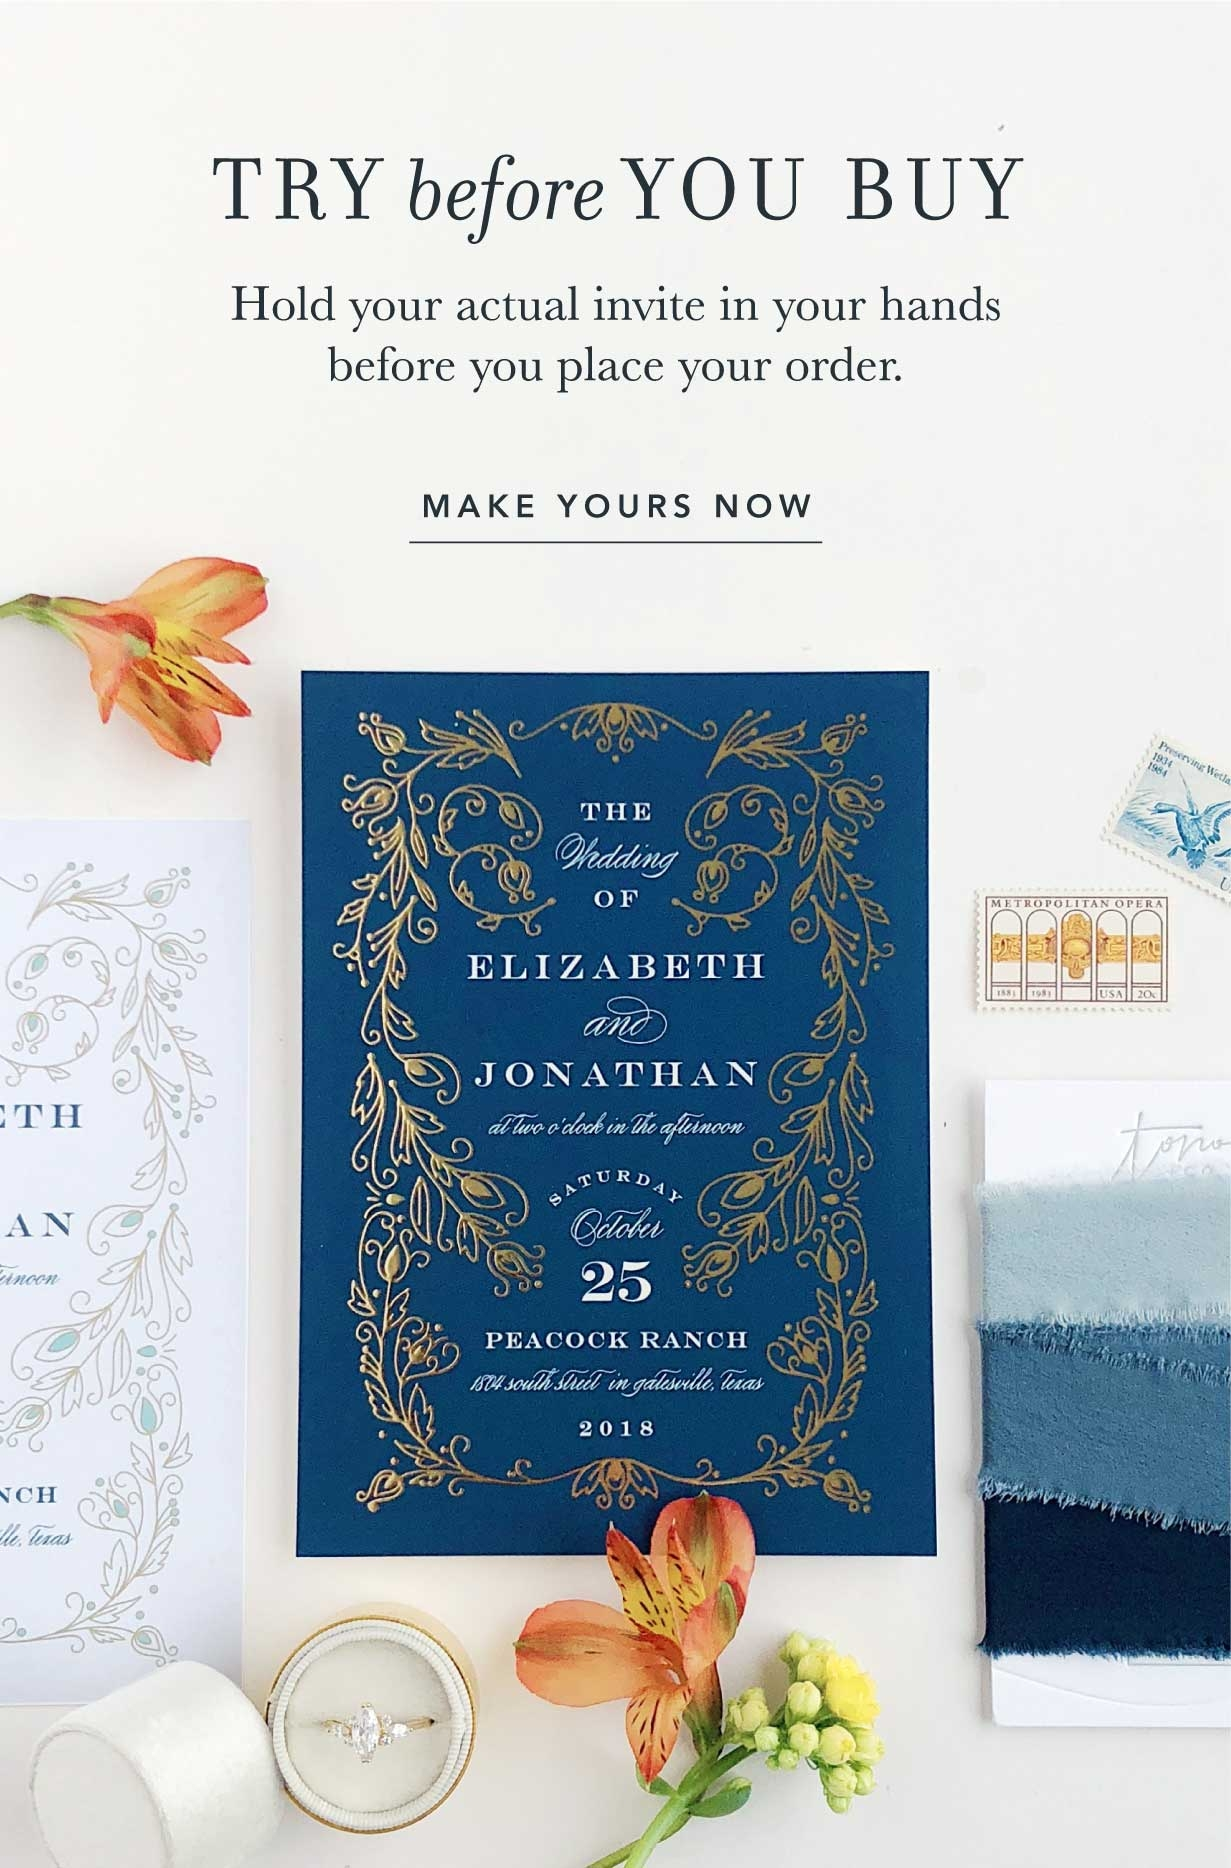 Try before you buy. Hold your actual invite in your hands before you place your order.